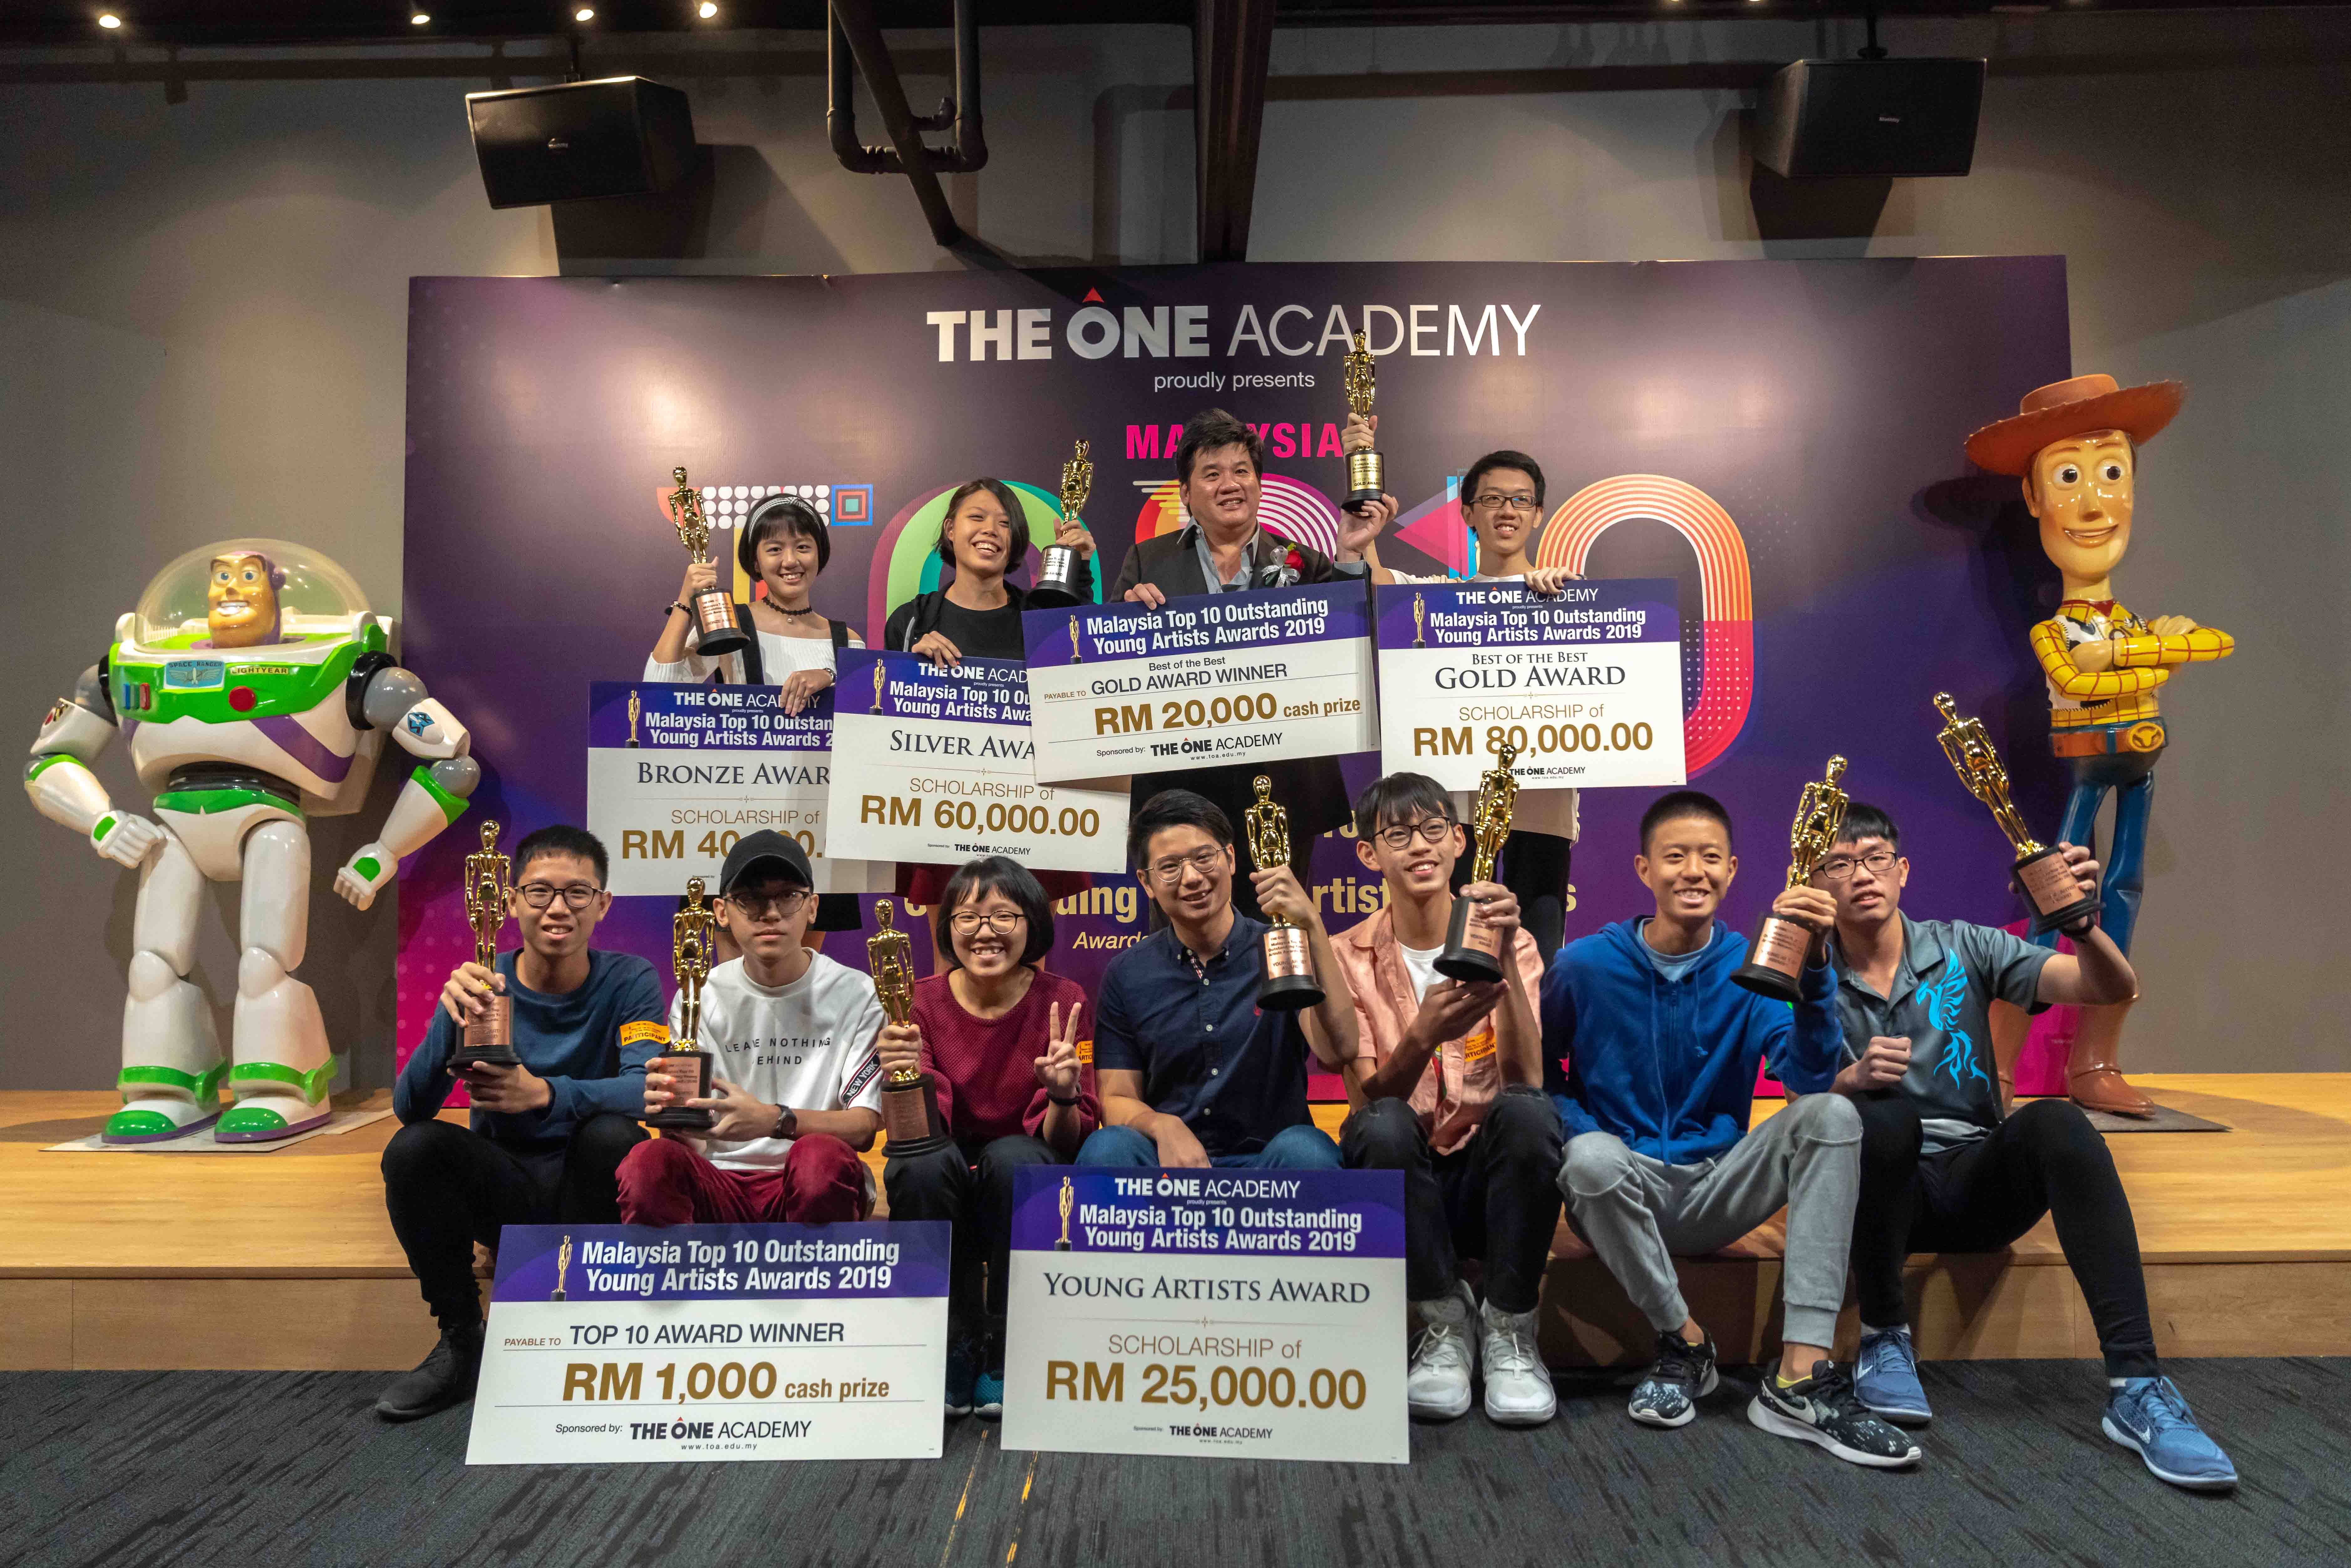 The Malaysia Top 10 Outstanding Young Artists Awards winners with The One Academy's Founder & Principal, Tatsun Hoi.